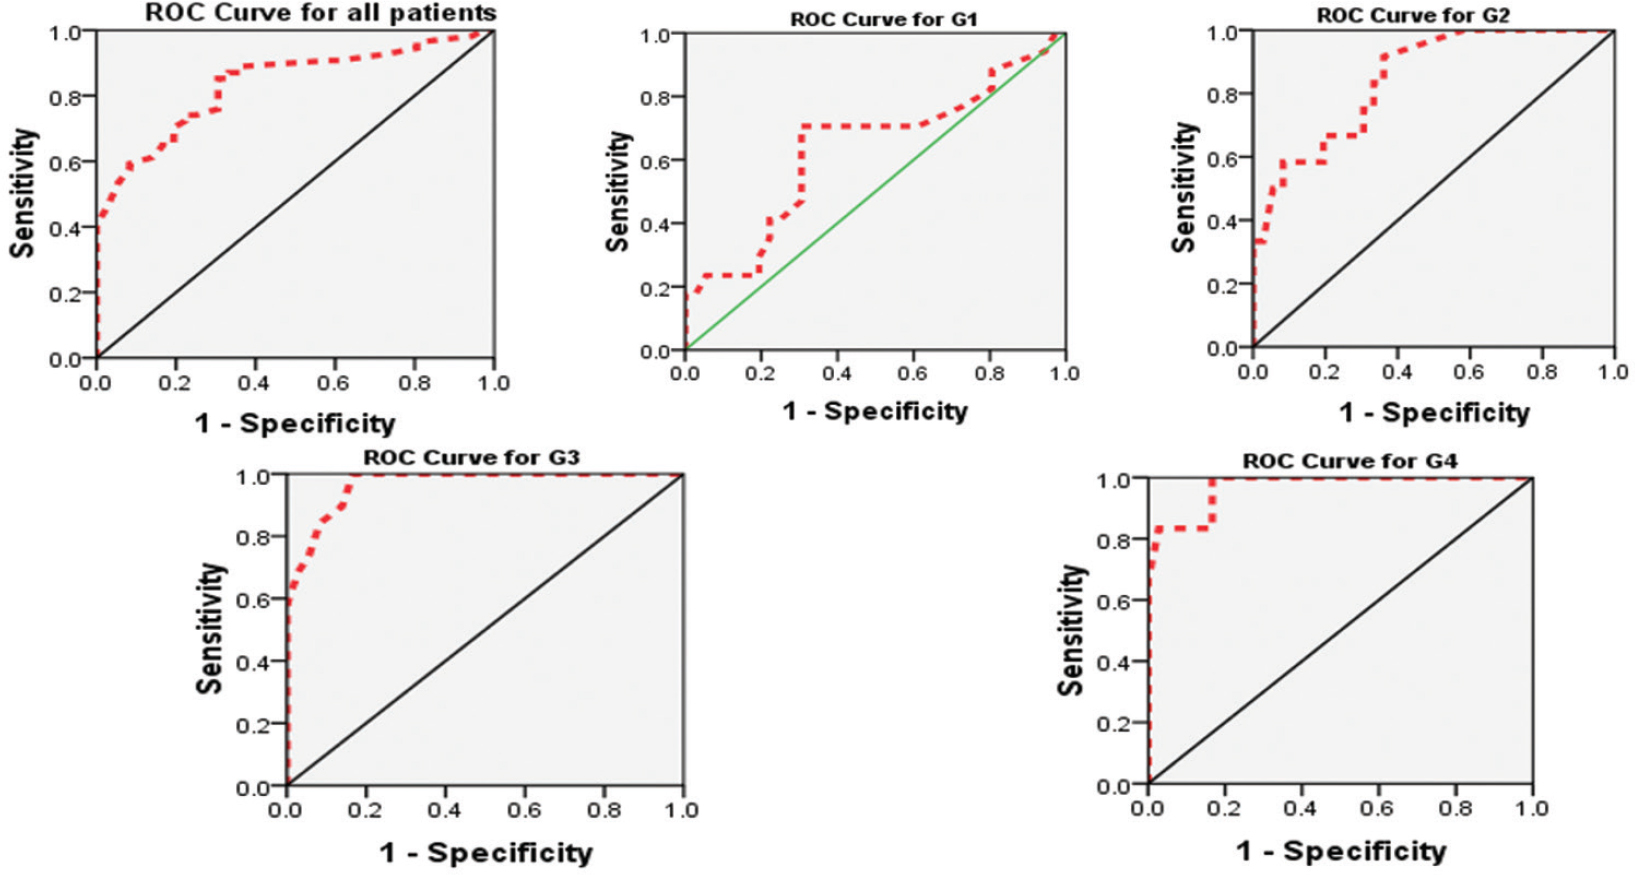 Figure 1: ROC curves of the studied groups showing sensitivity, specificity, and accuracy of serum adiponectin levels for prediction of coronary artery disease (CAD) and detection of its severity.